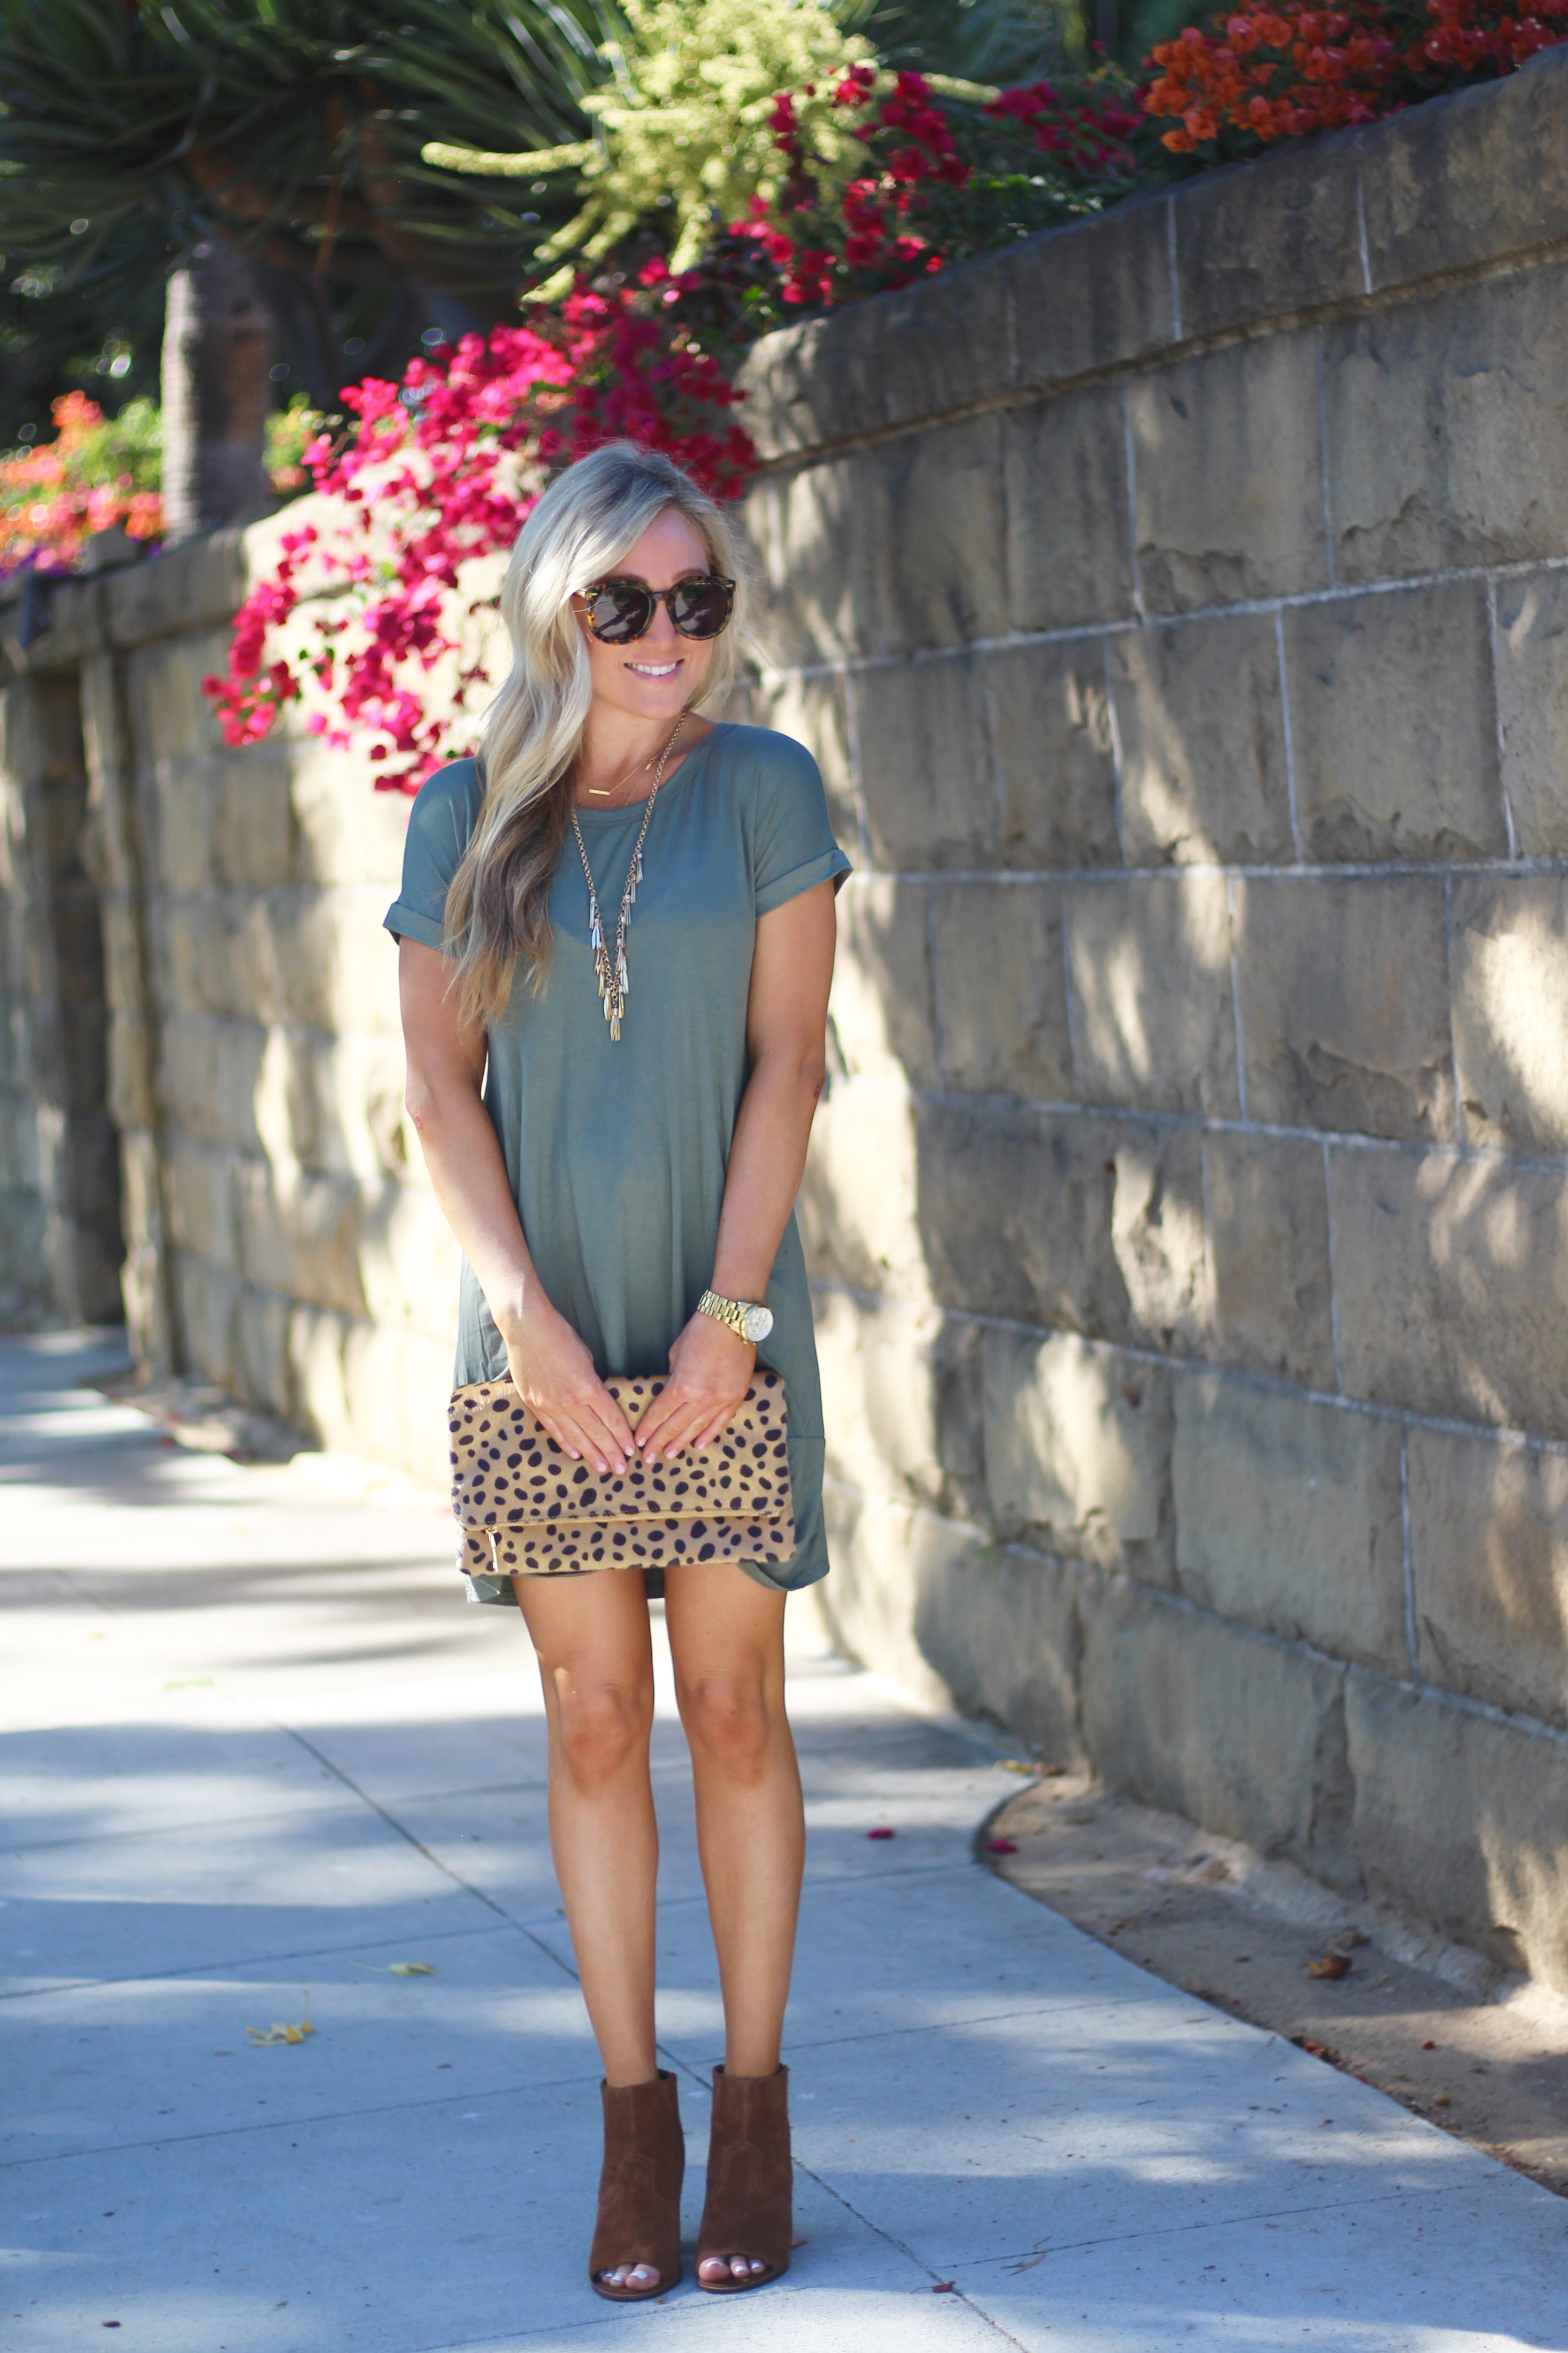 8-23-16 knotted leopard 6